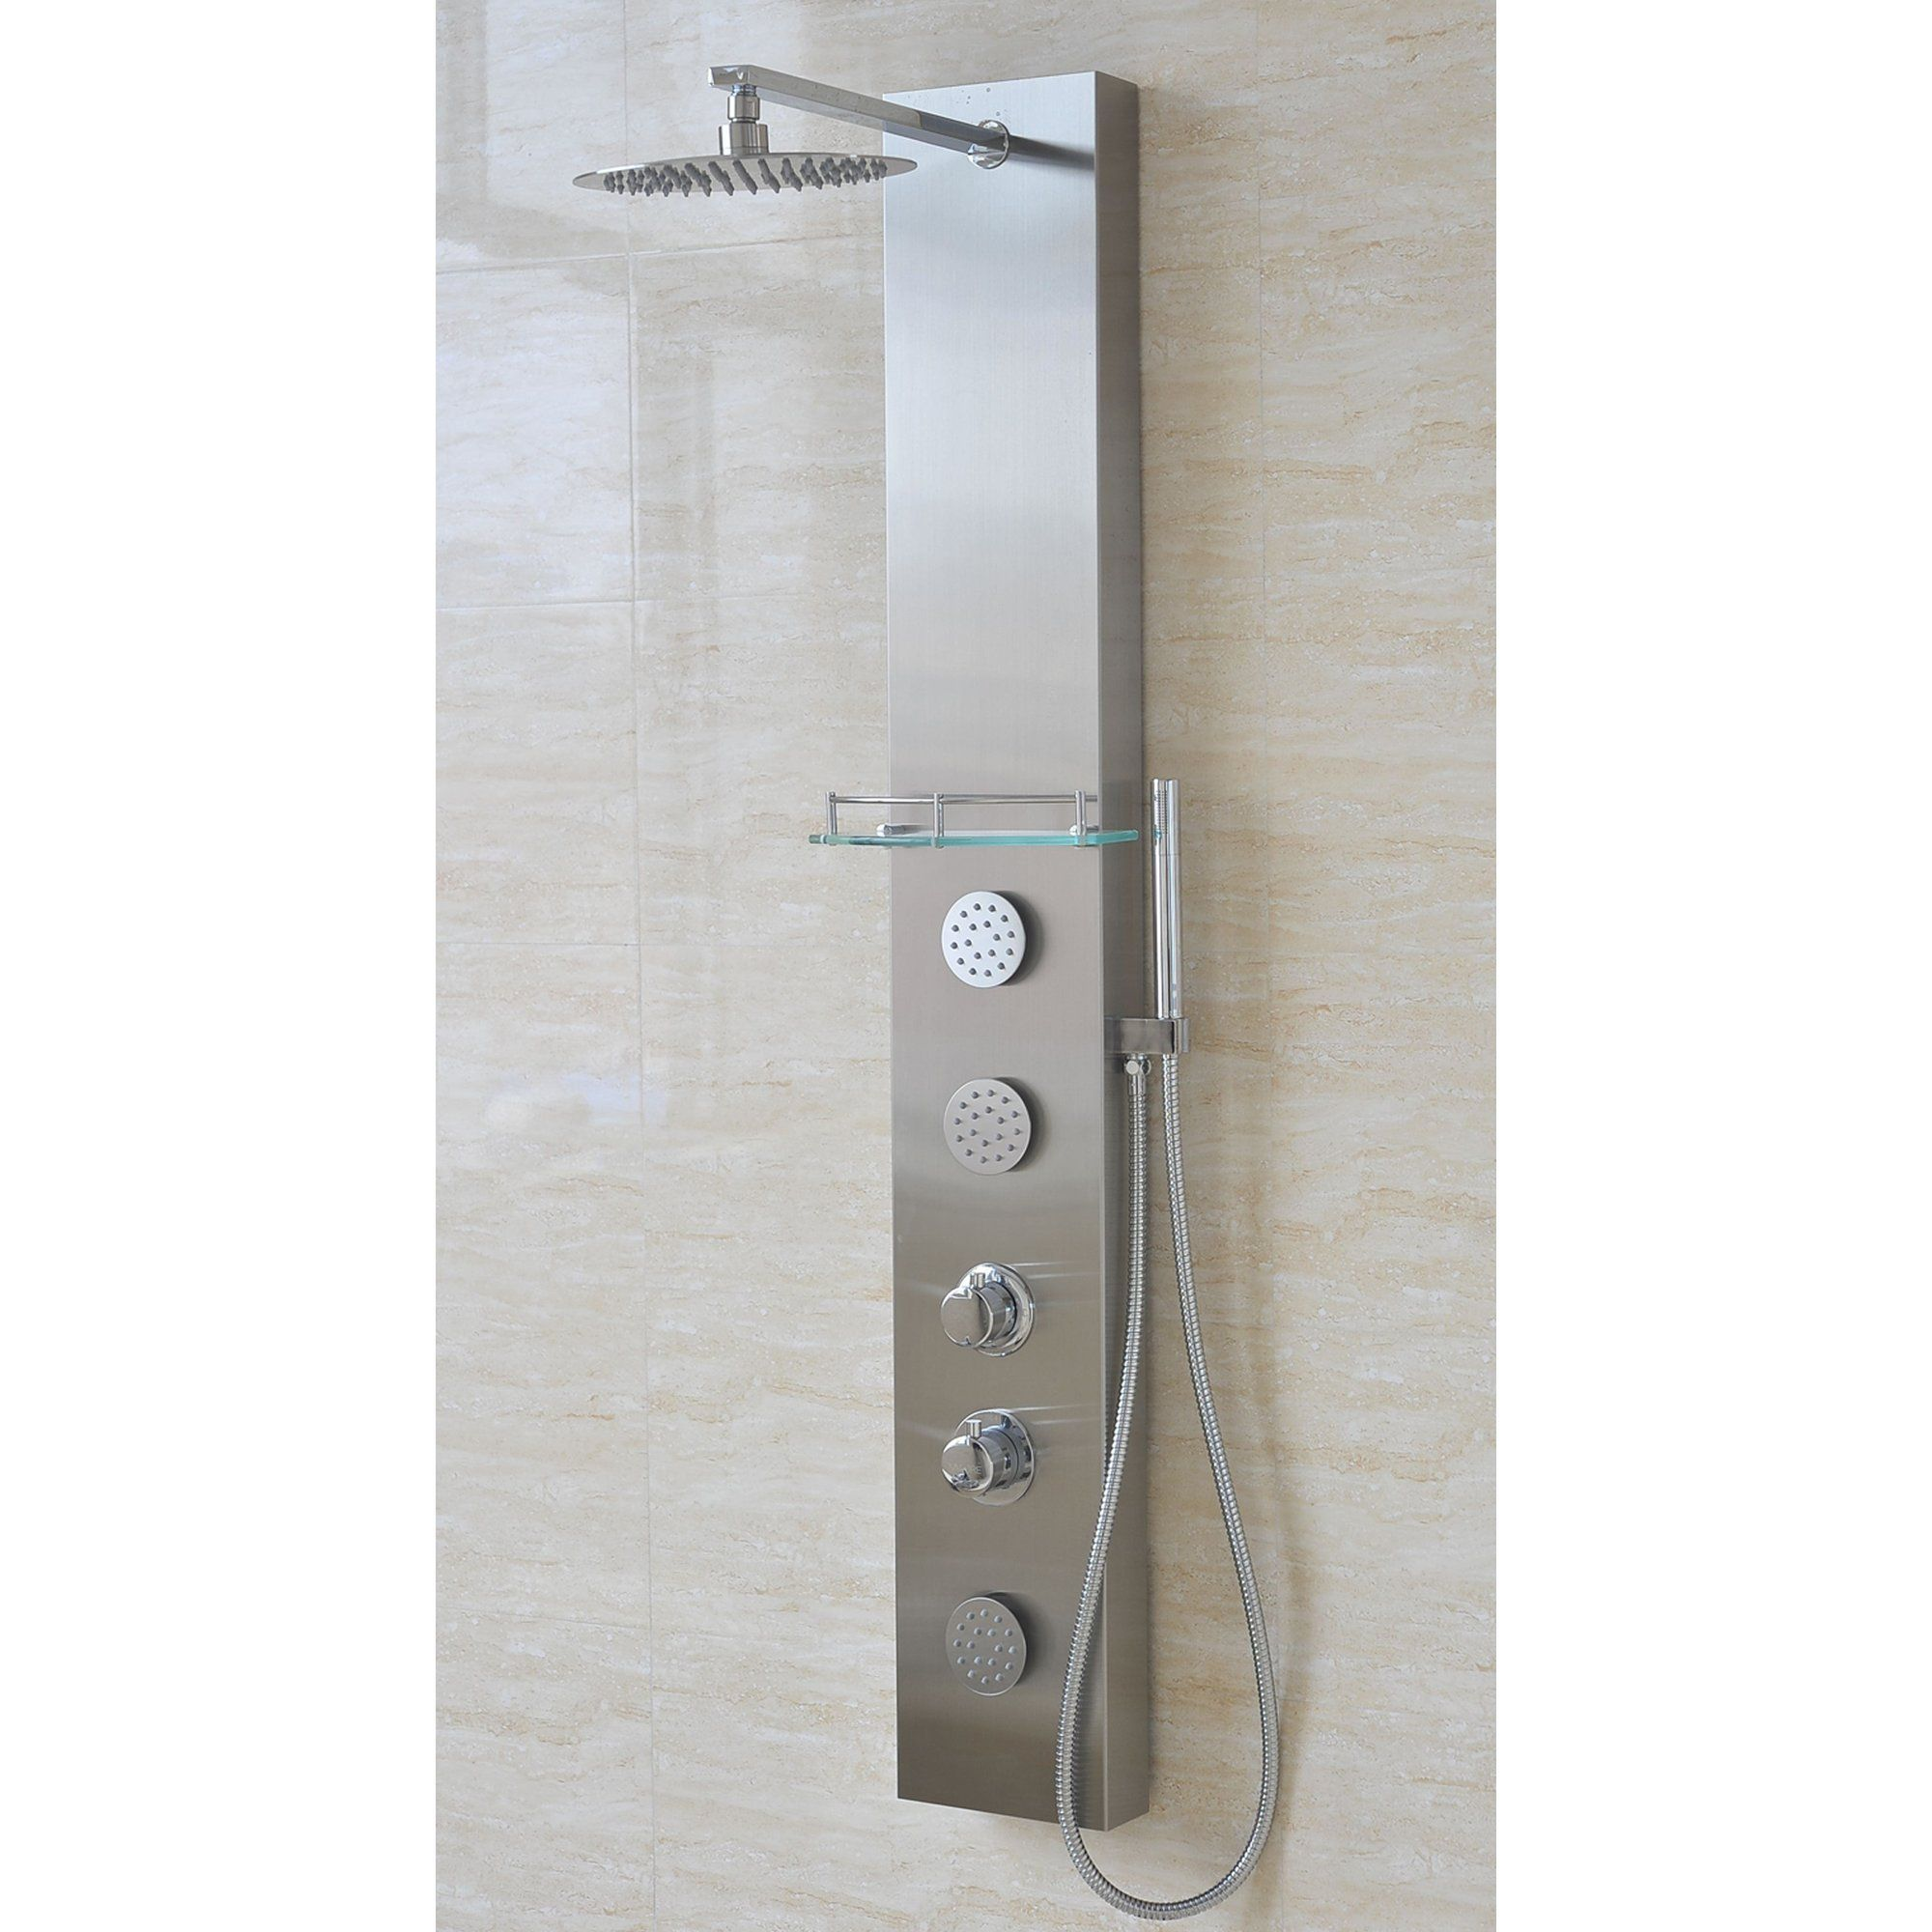 Diverter Complete Shower System